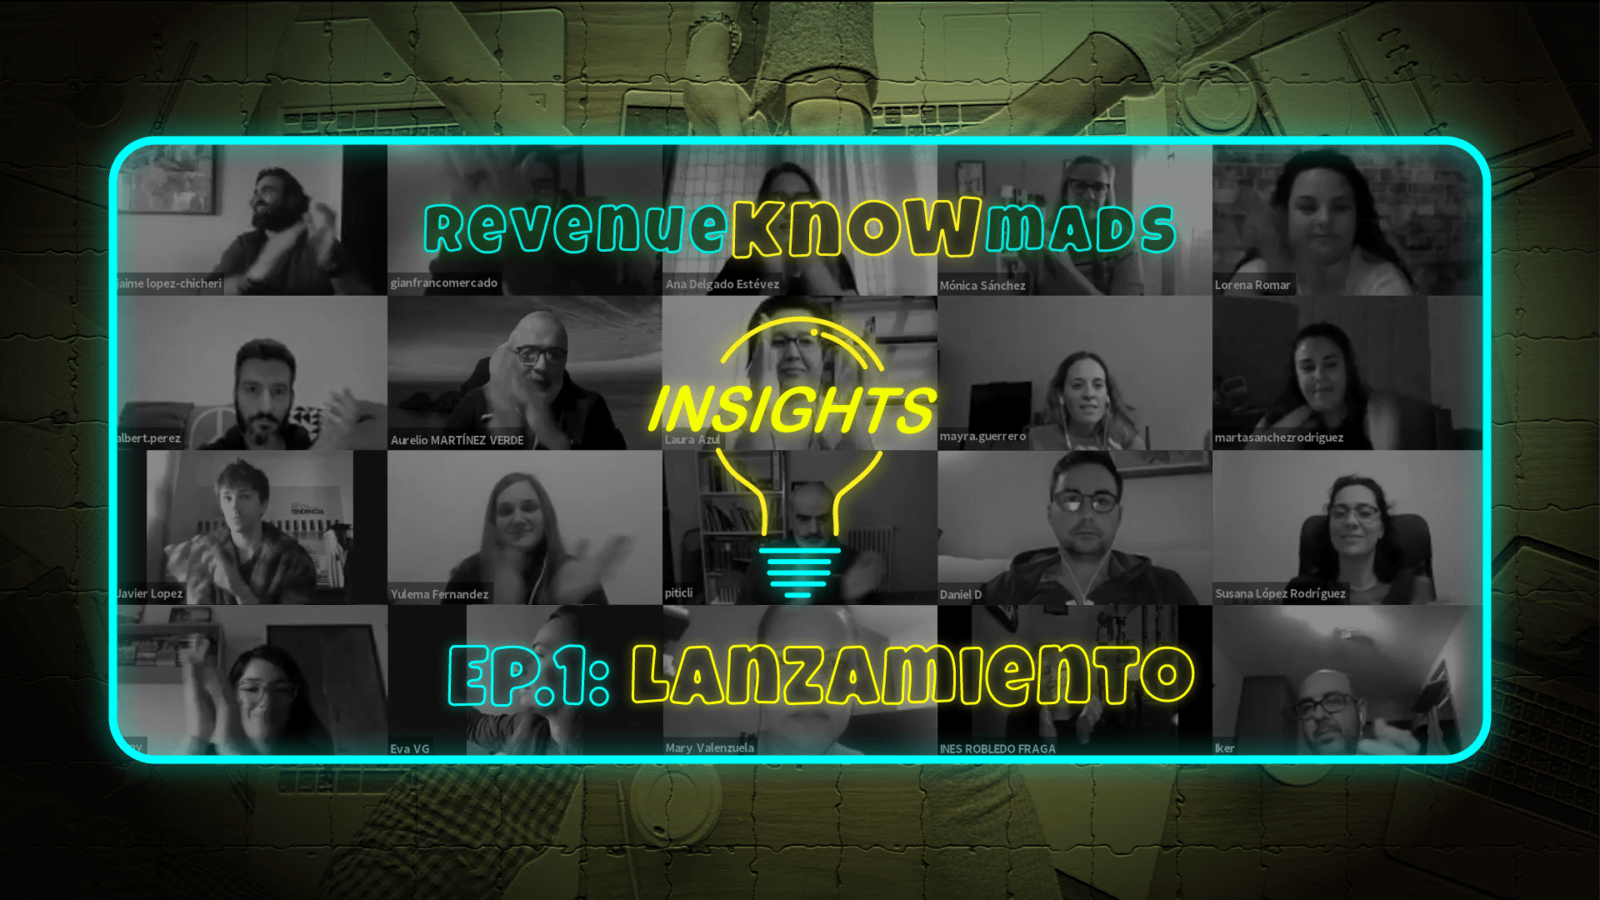 RevenueKnowmads Insights